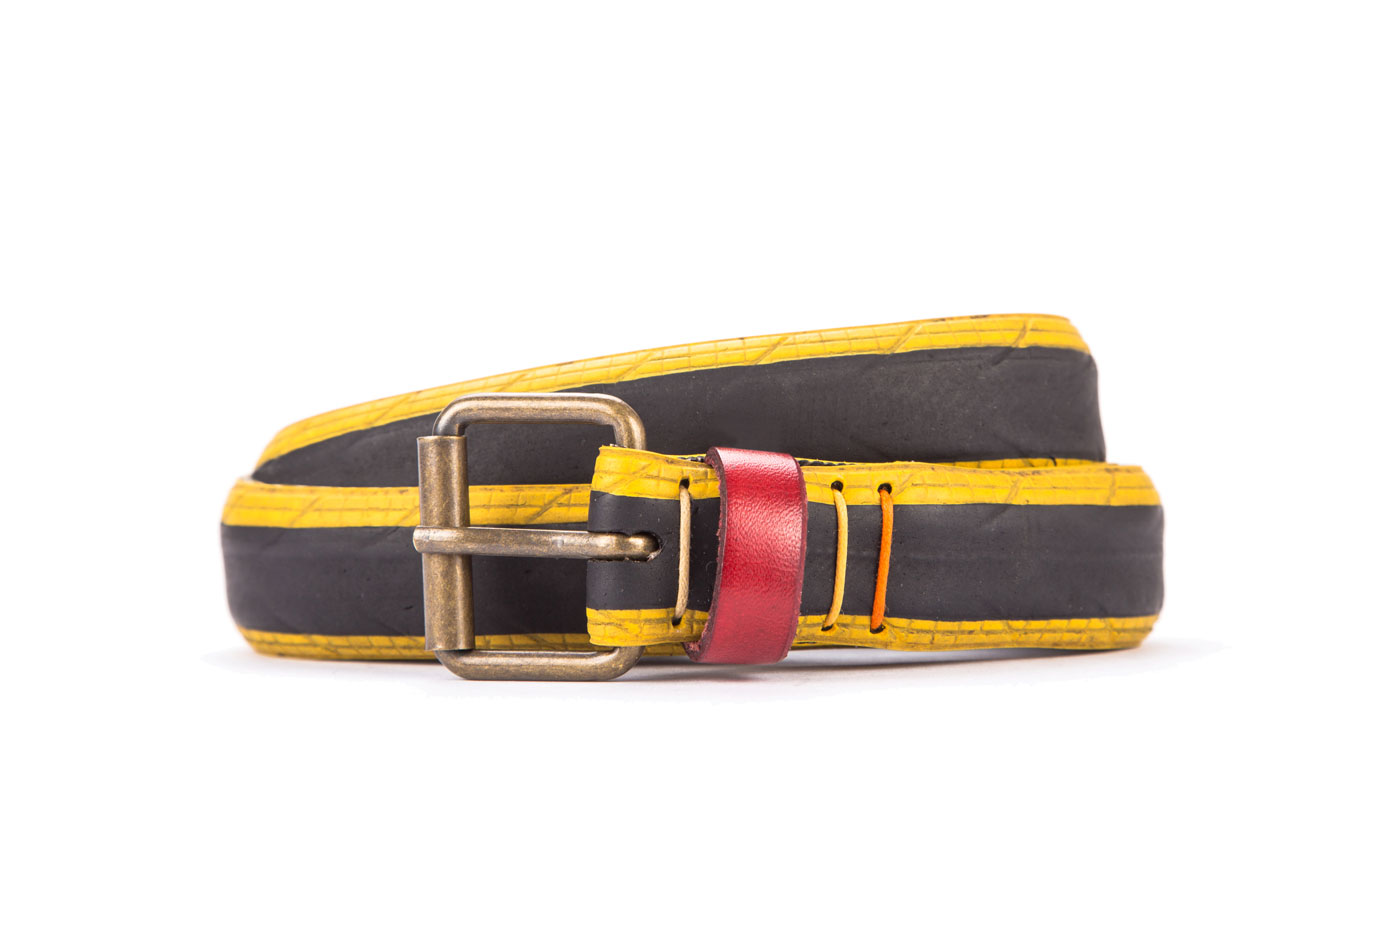 #8220 Coloured belt from a spare race bicycle tyre